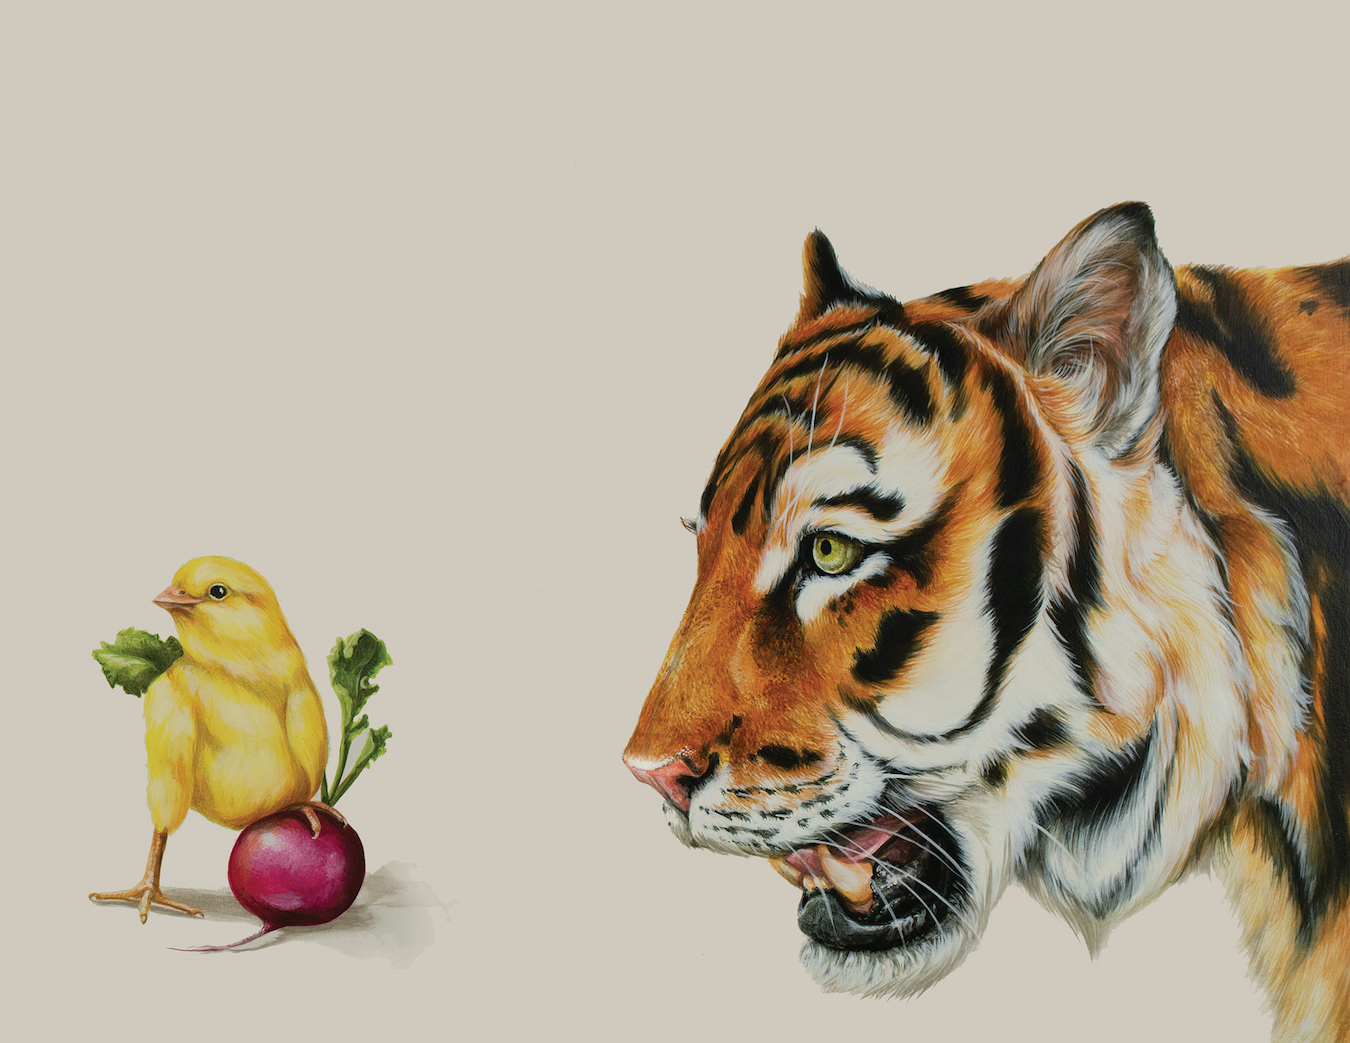 Tricia George: The Tiger and The Chick